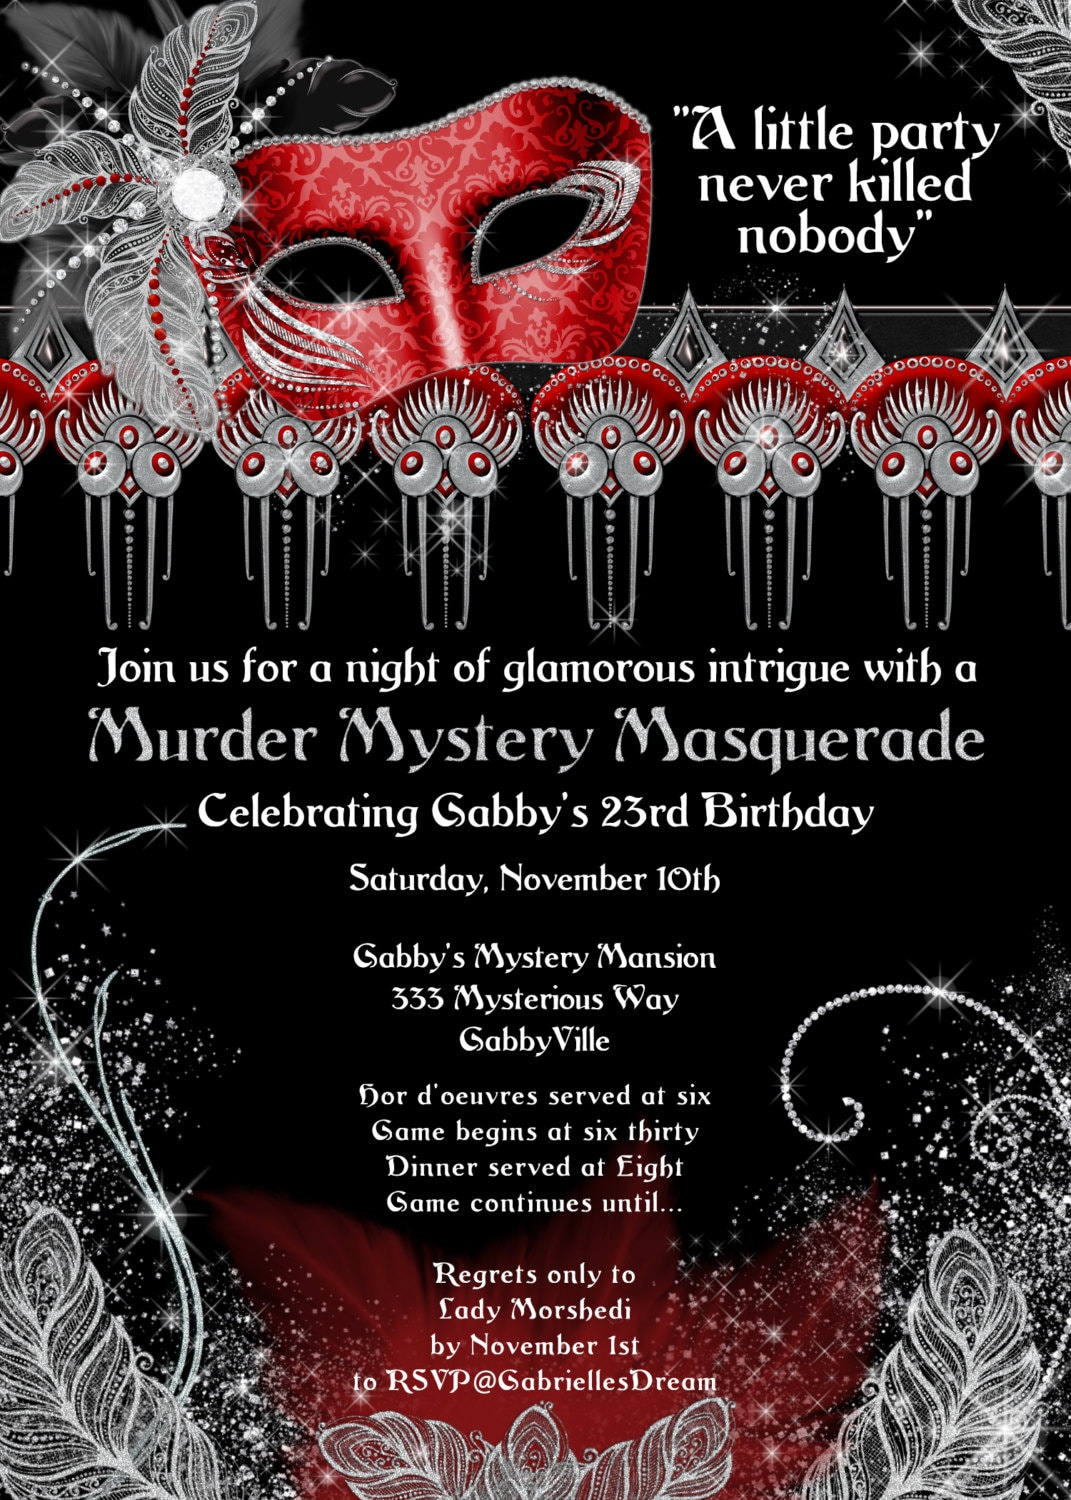 Masquerade party invitation murder masquerade murder mystery description murder mystery masquerade stopboris Images